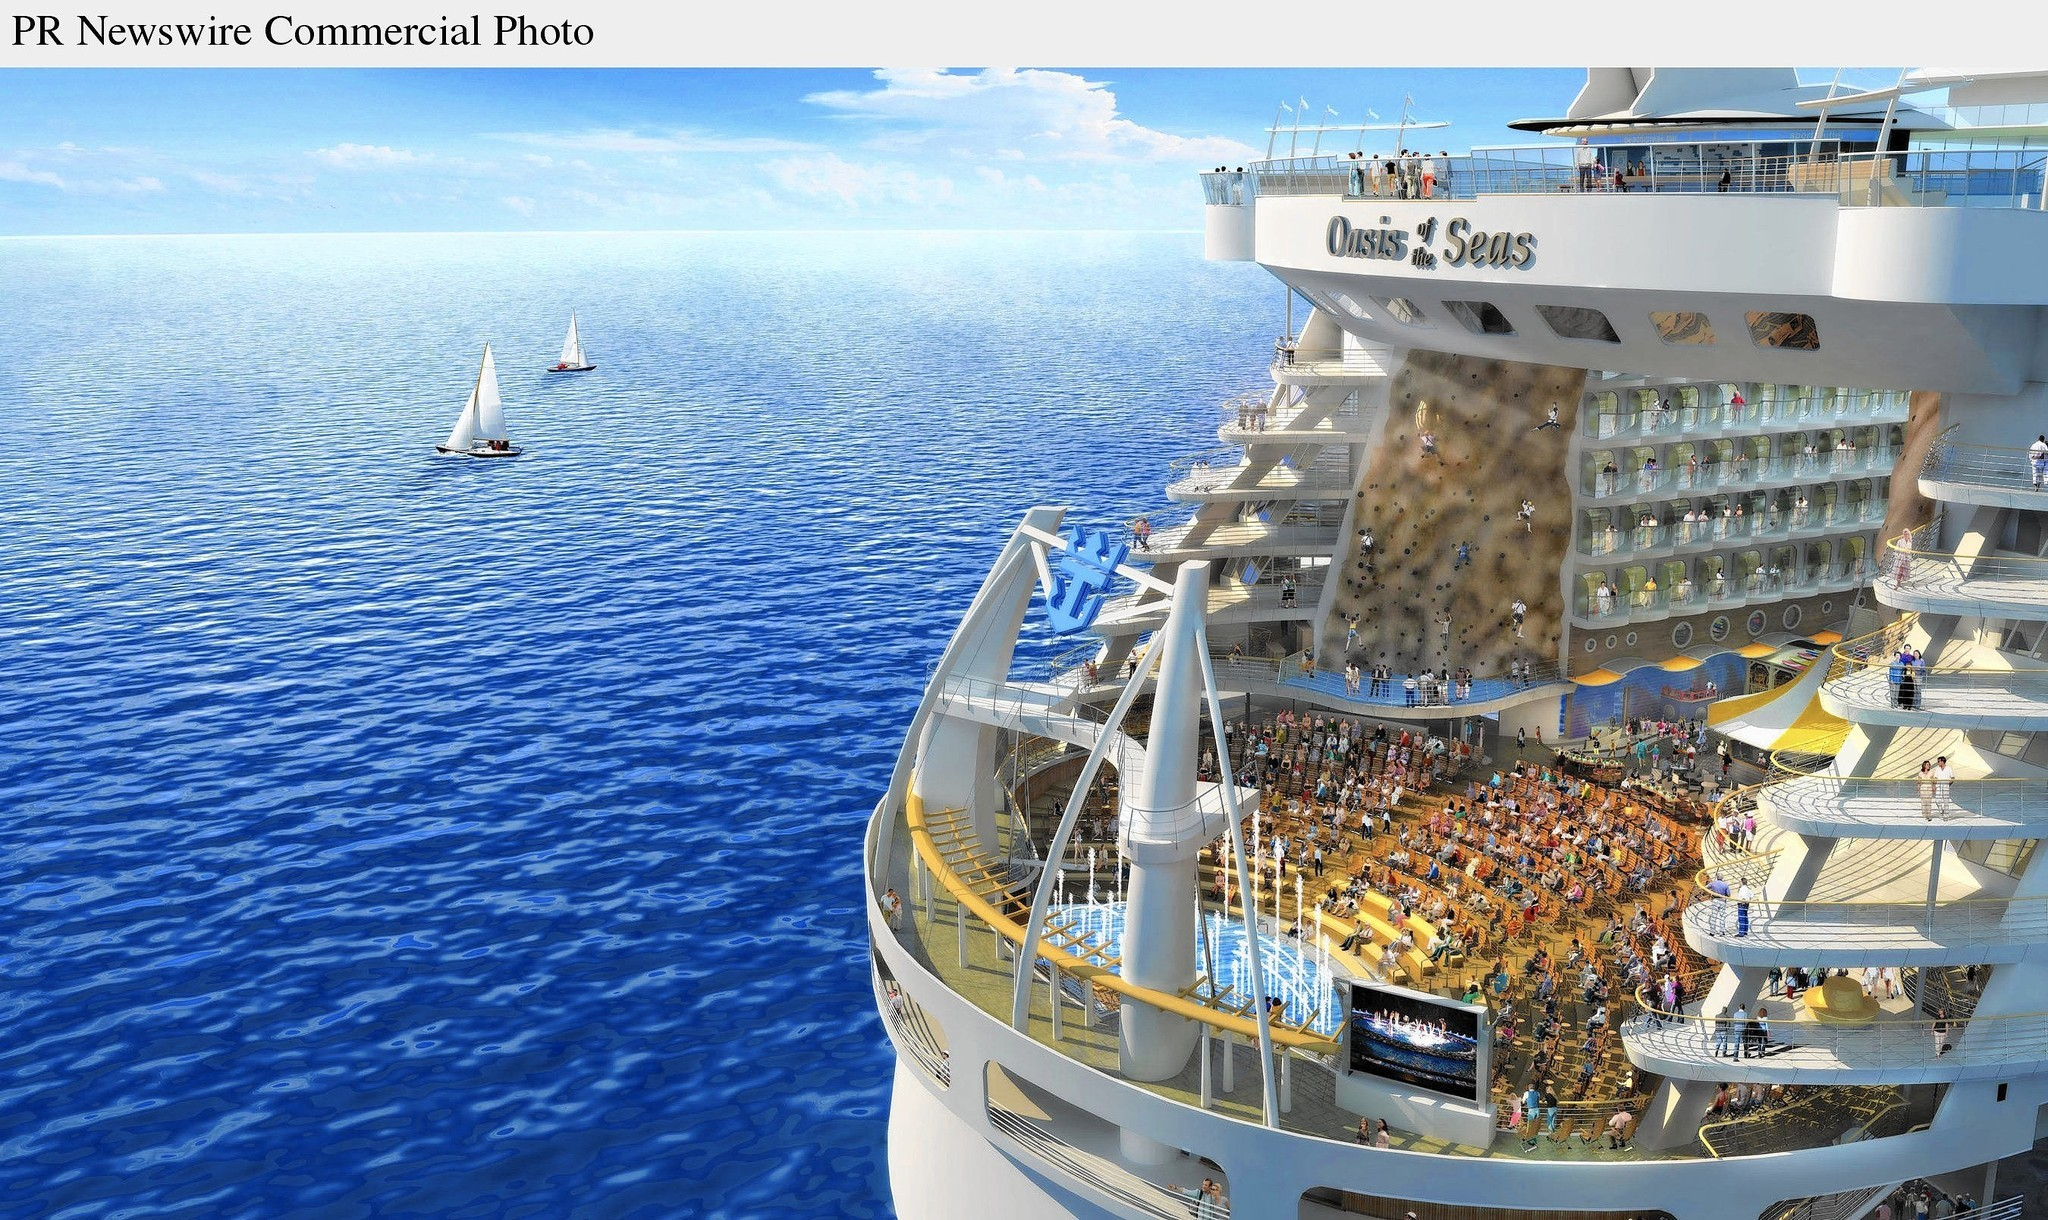 Worlds Major Cruise Ships Are Getting Bigger And Bigger - Cruise ship cost to build